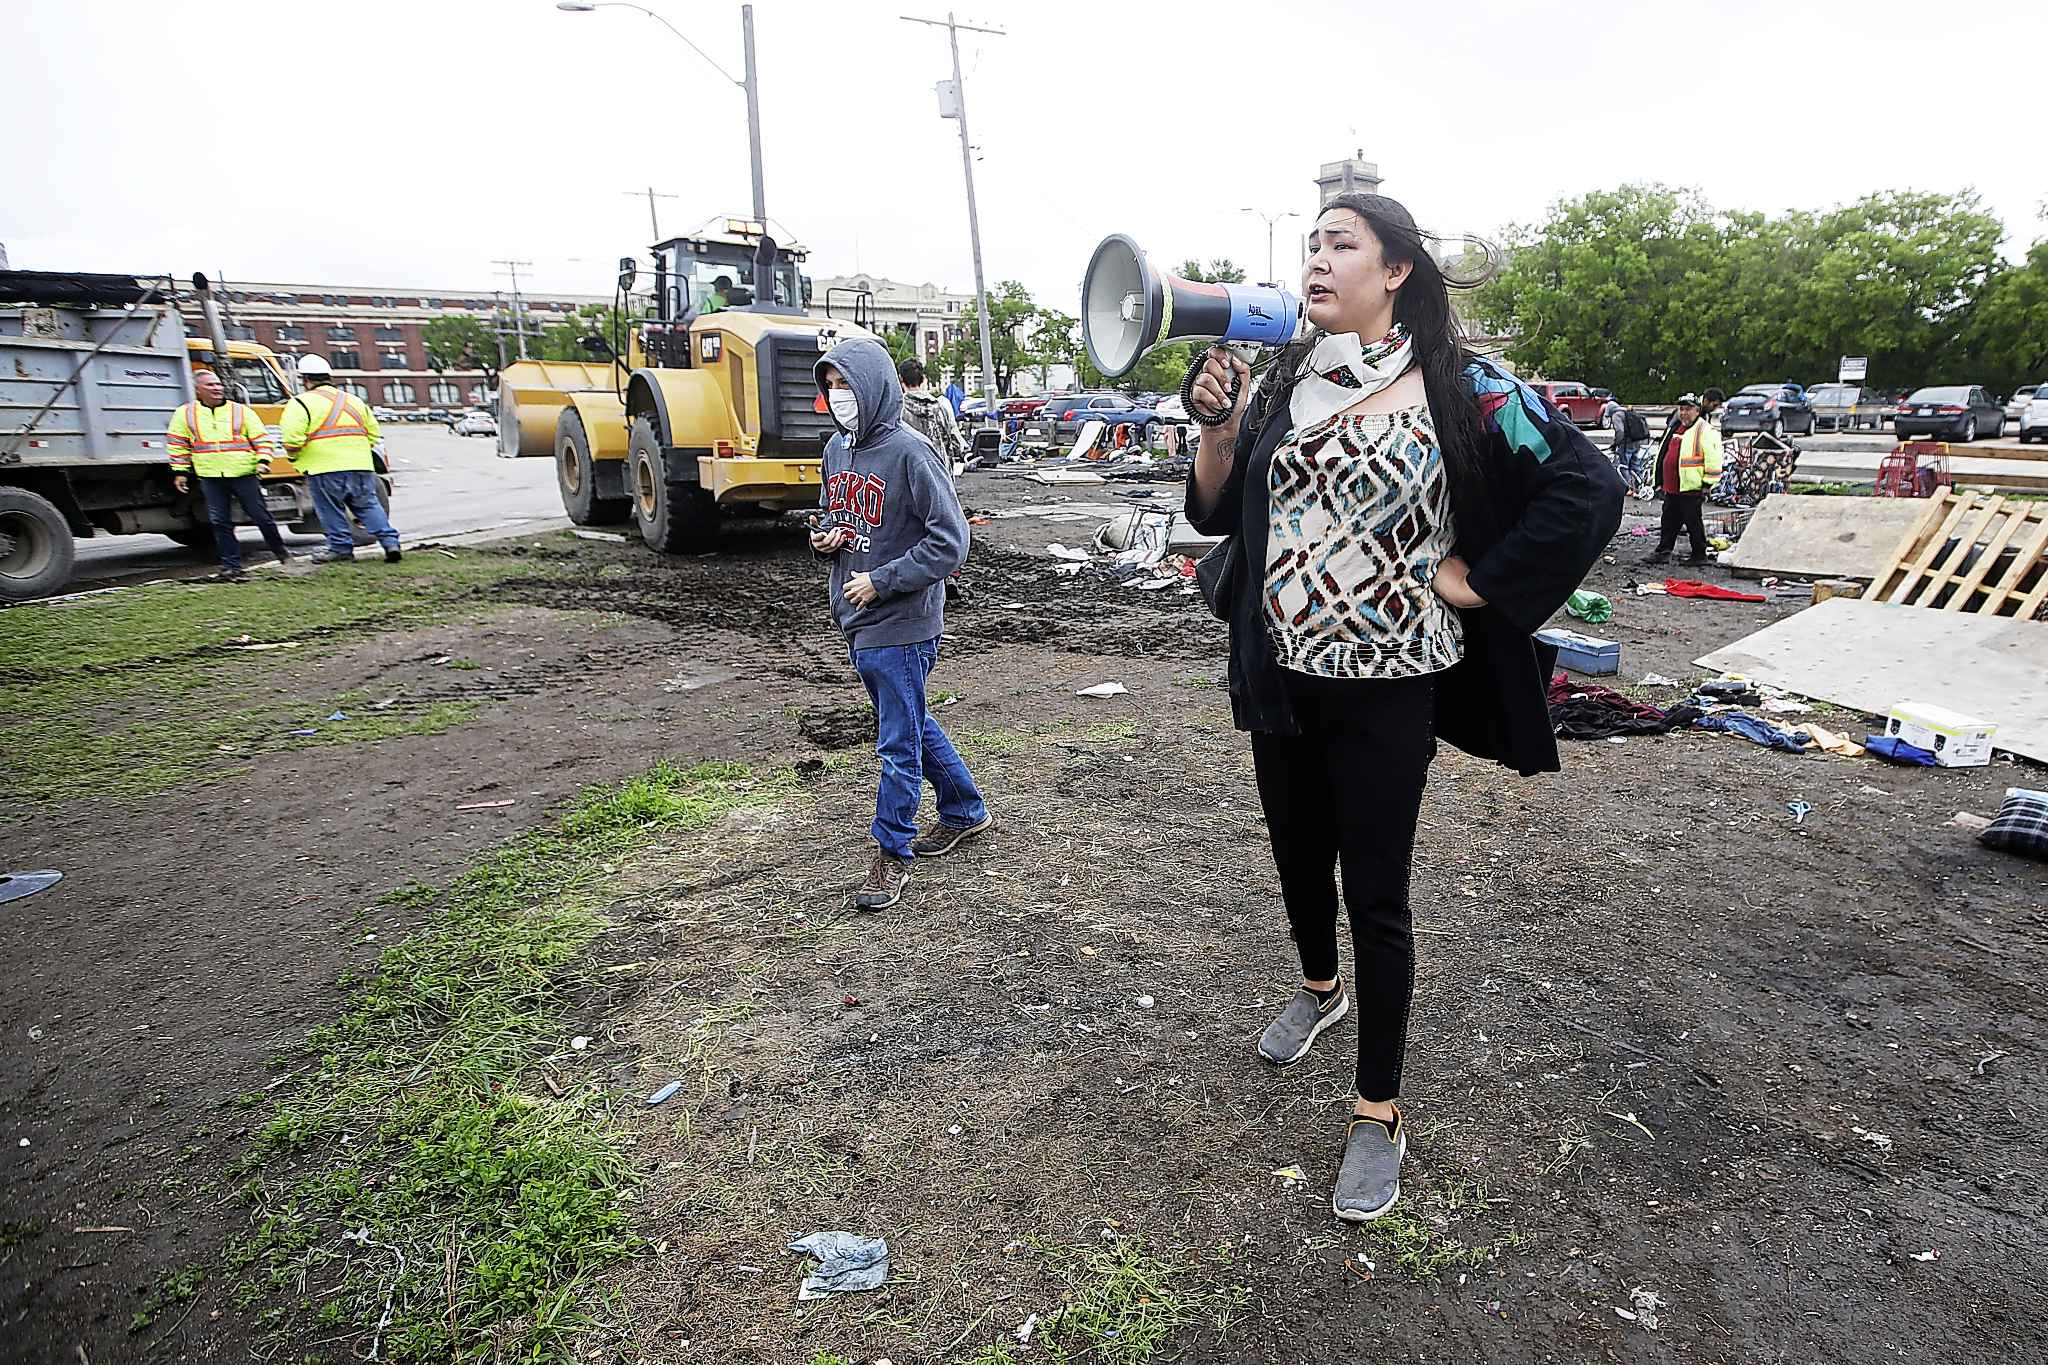 Protestors try to block city crews from dismantling camps on Austin Street and Henry Avenue on June 10.